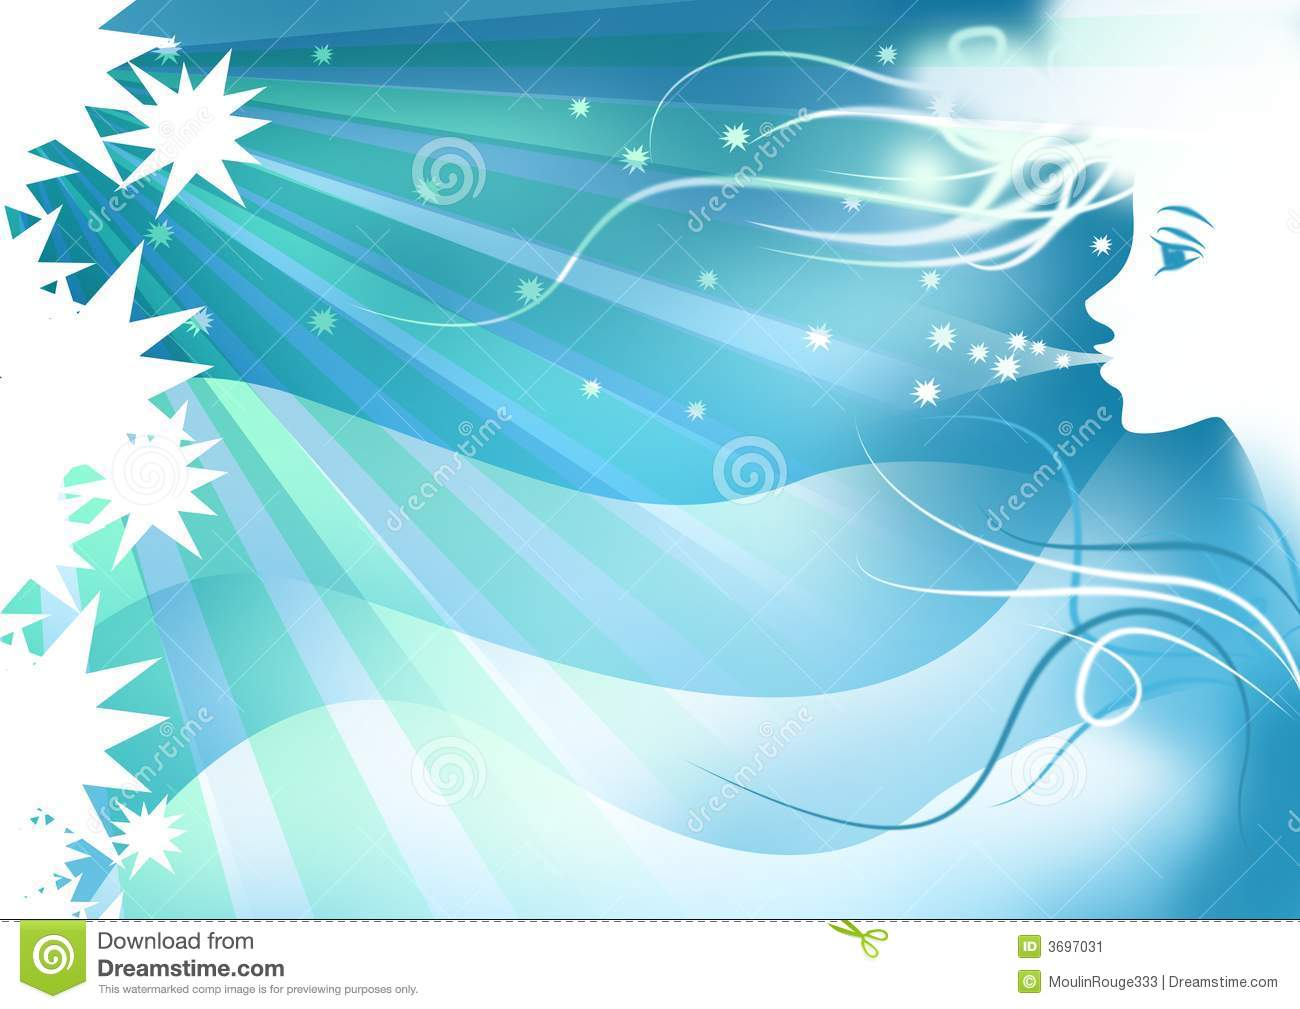 Winter Girl Background For Winter Season Stock Image - Image: 3697031